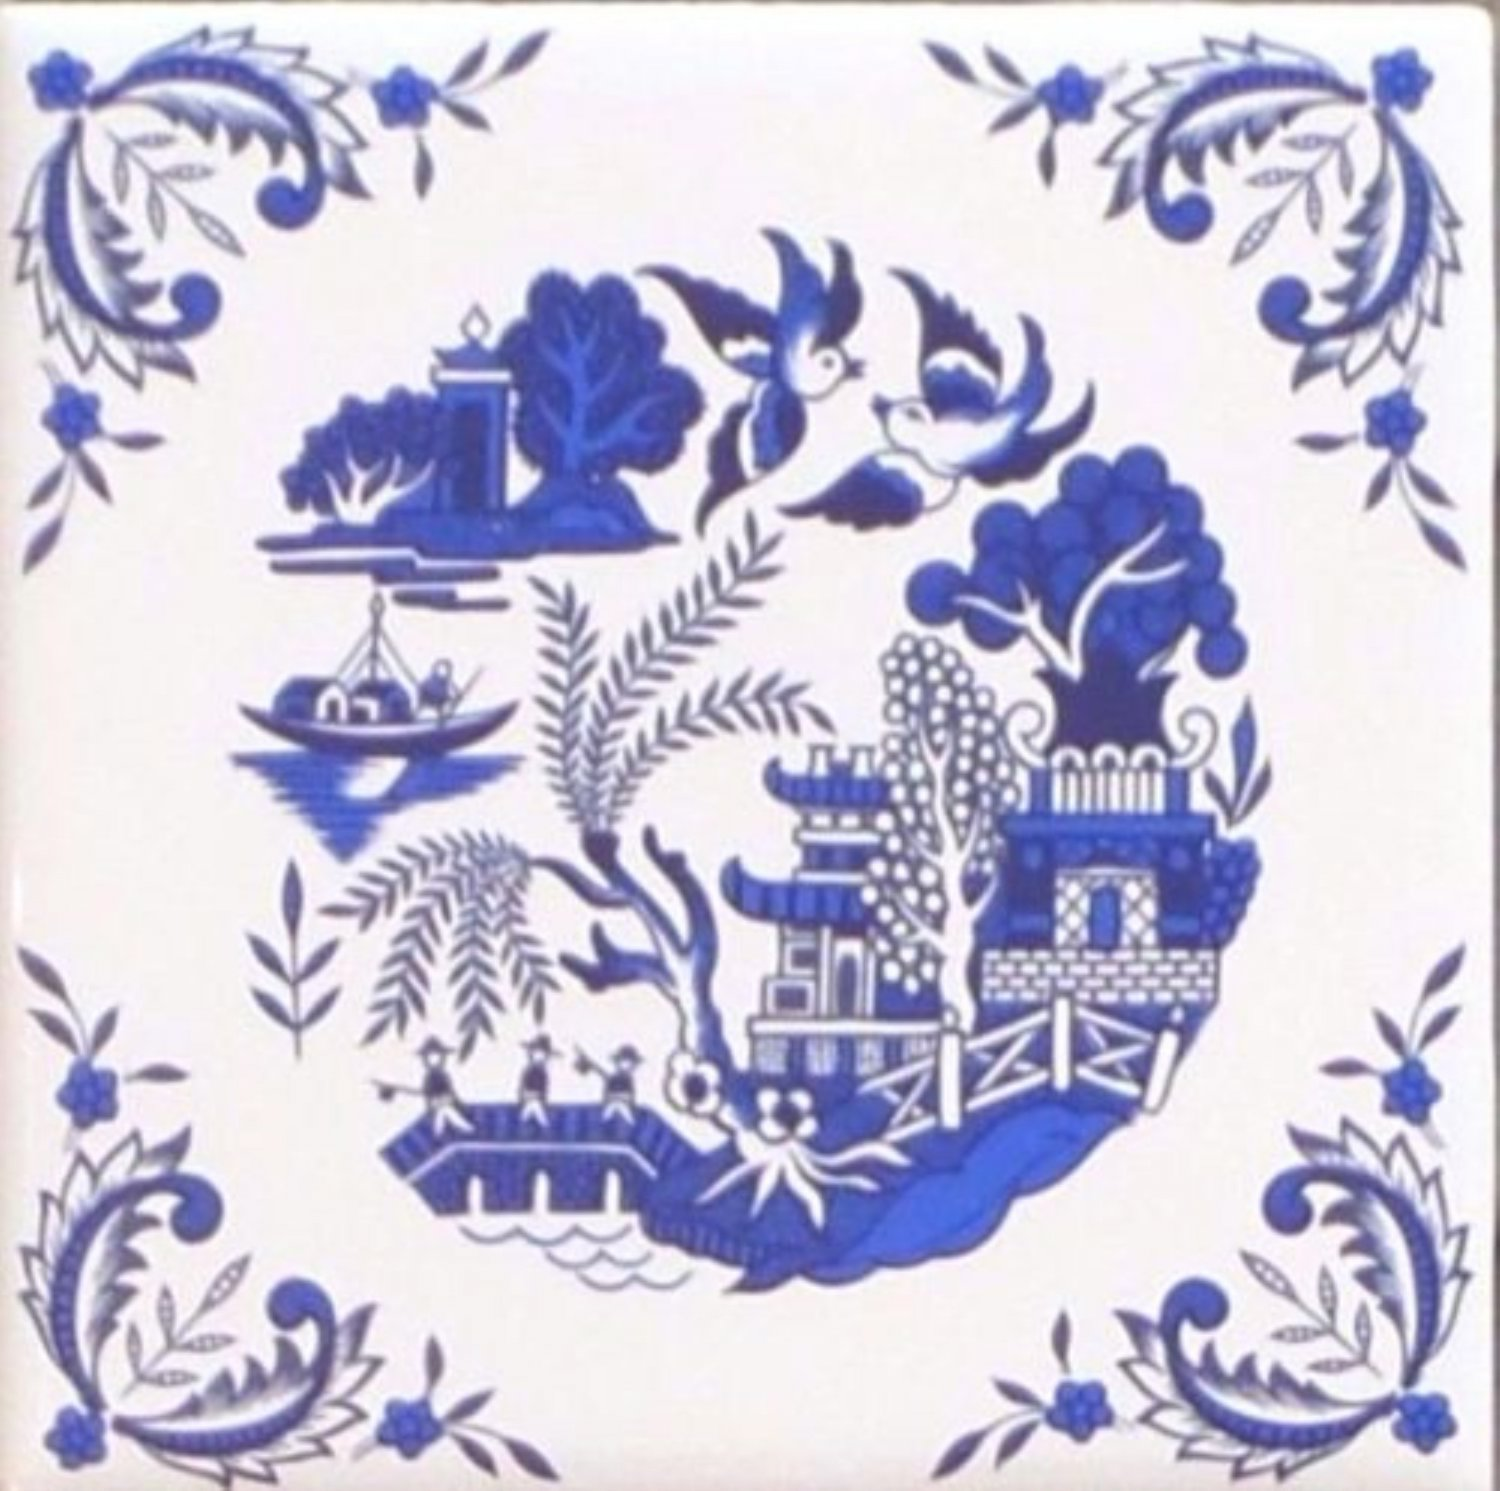 "Blue Willow Ceramic 4.25"" Accent Tile Kiln Fired Decor with Decorative Corners"